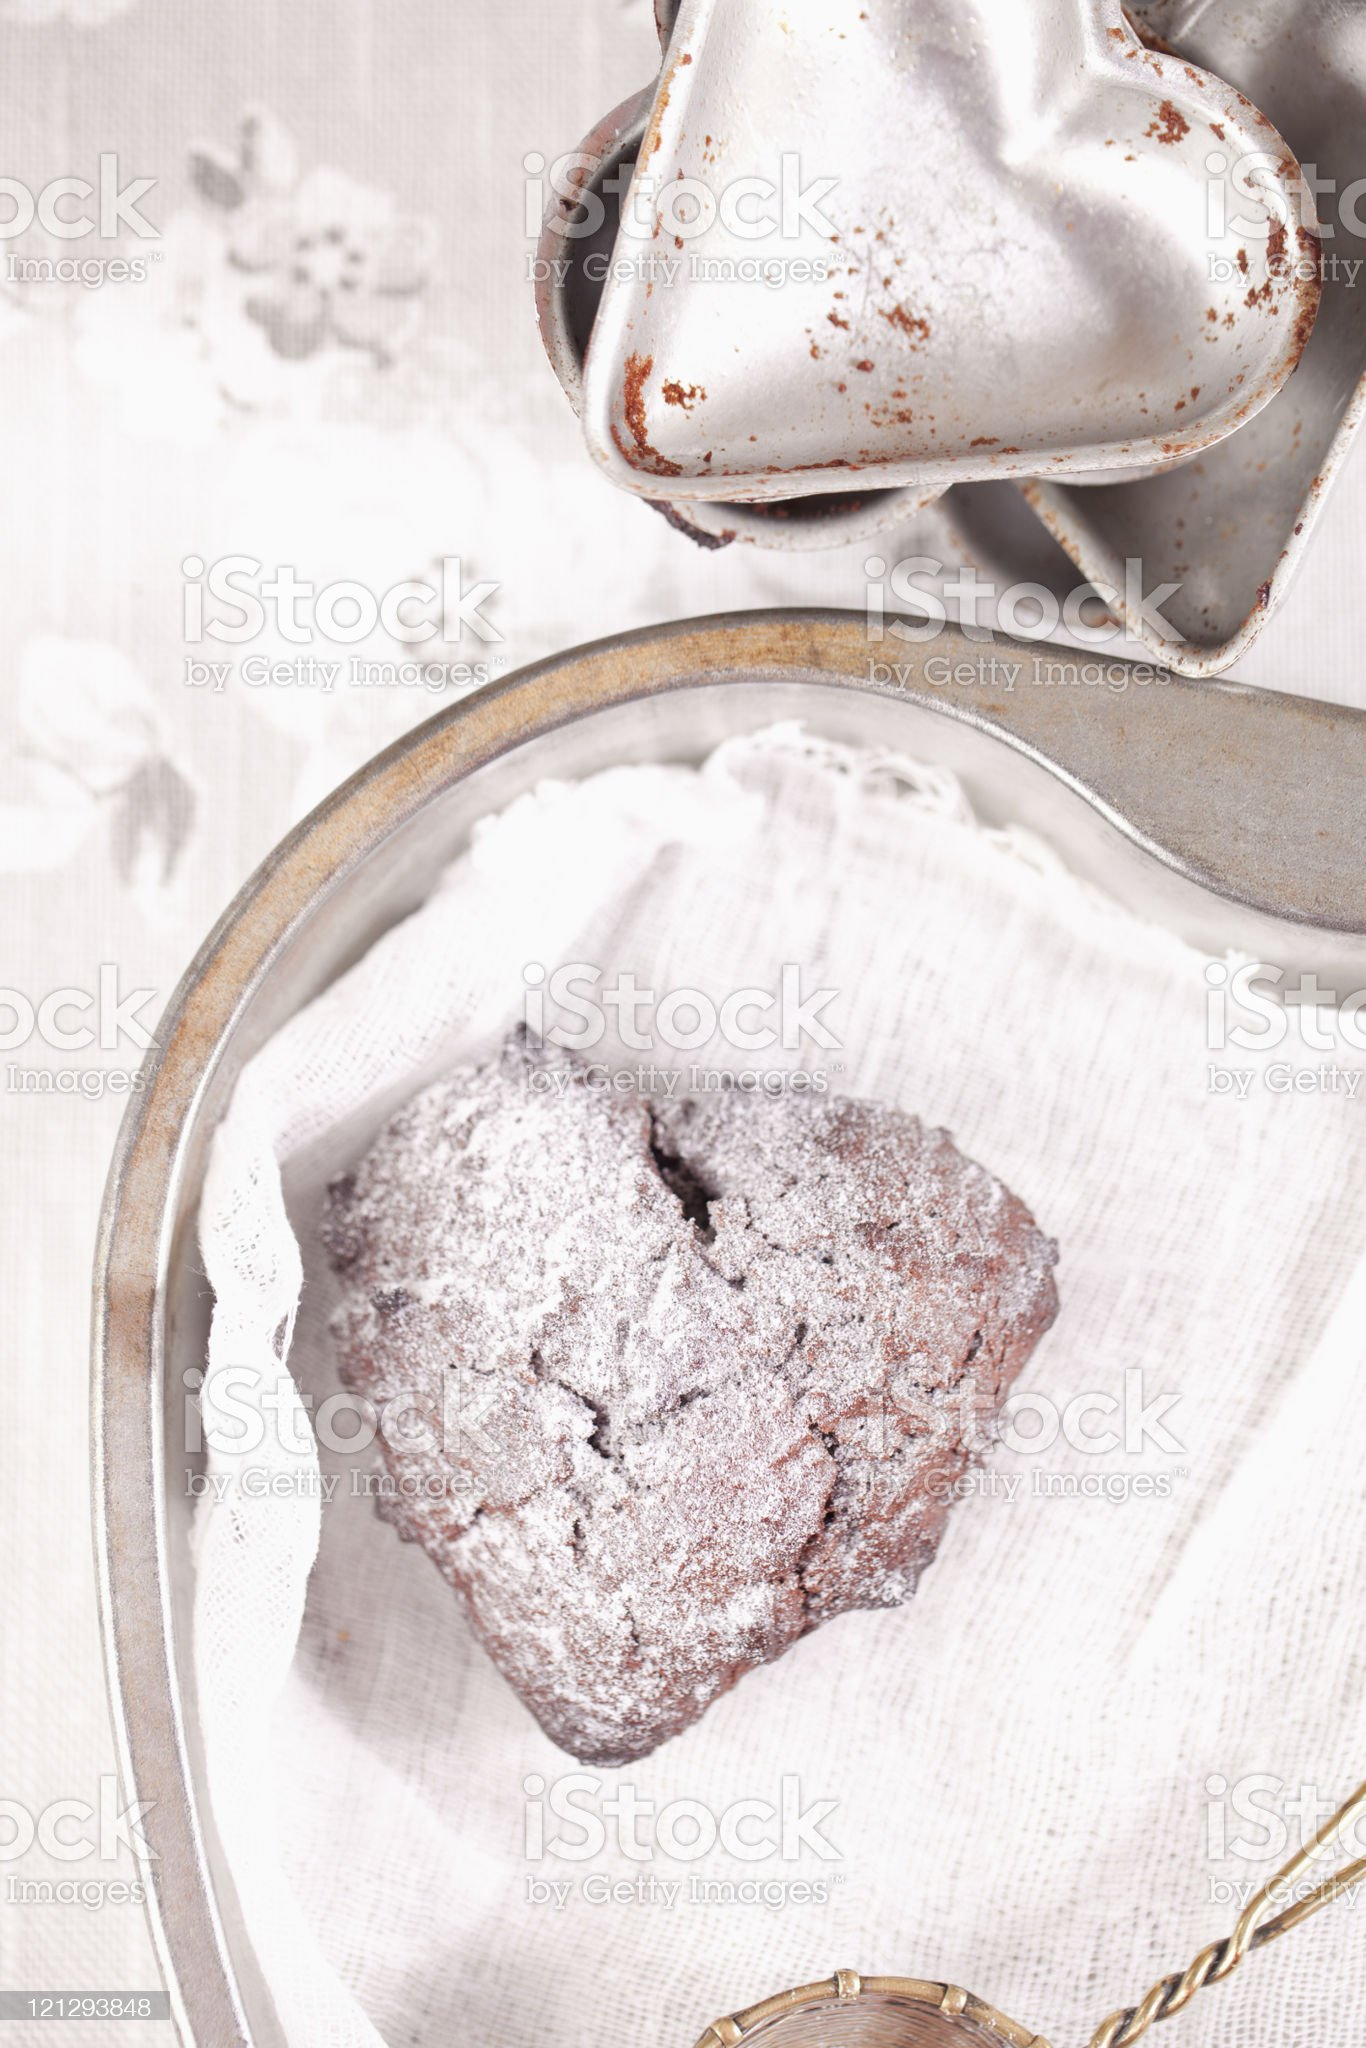 chocolat muffin dusted sugar, heart shape trays royalty-free stock photo